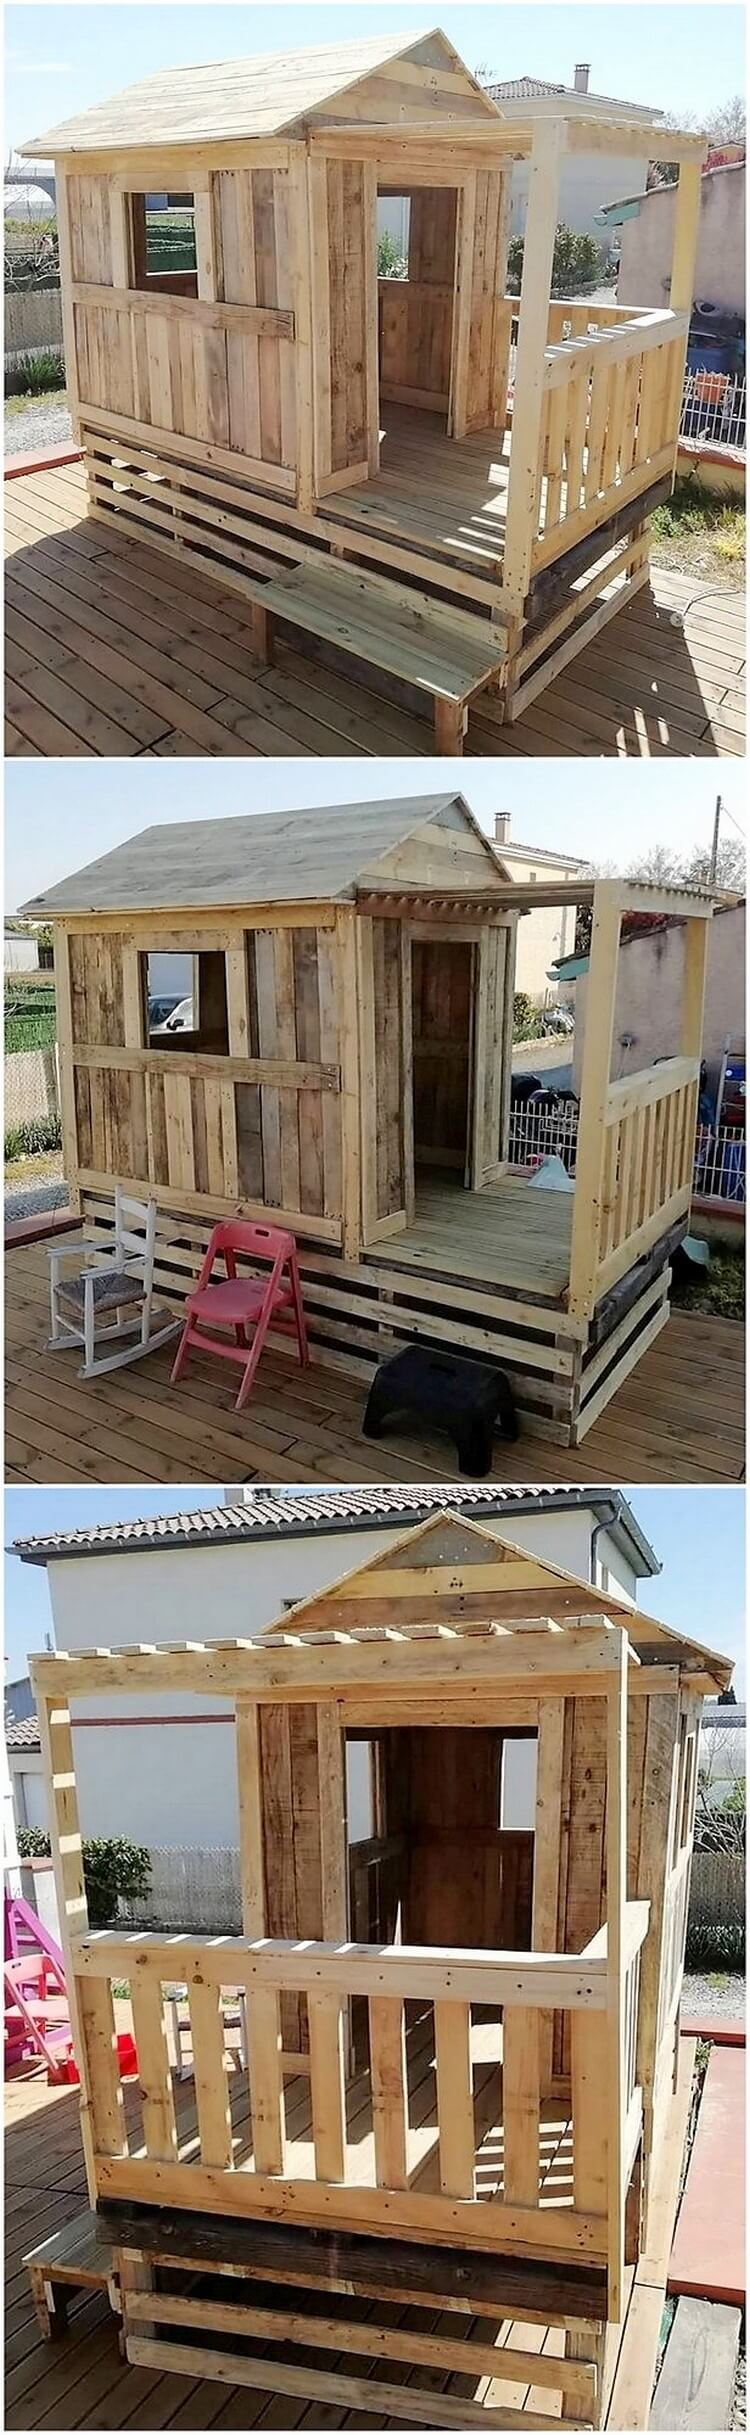 Pallet Playhouse